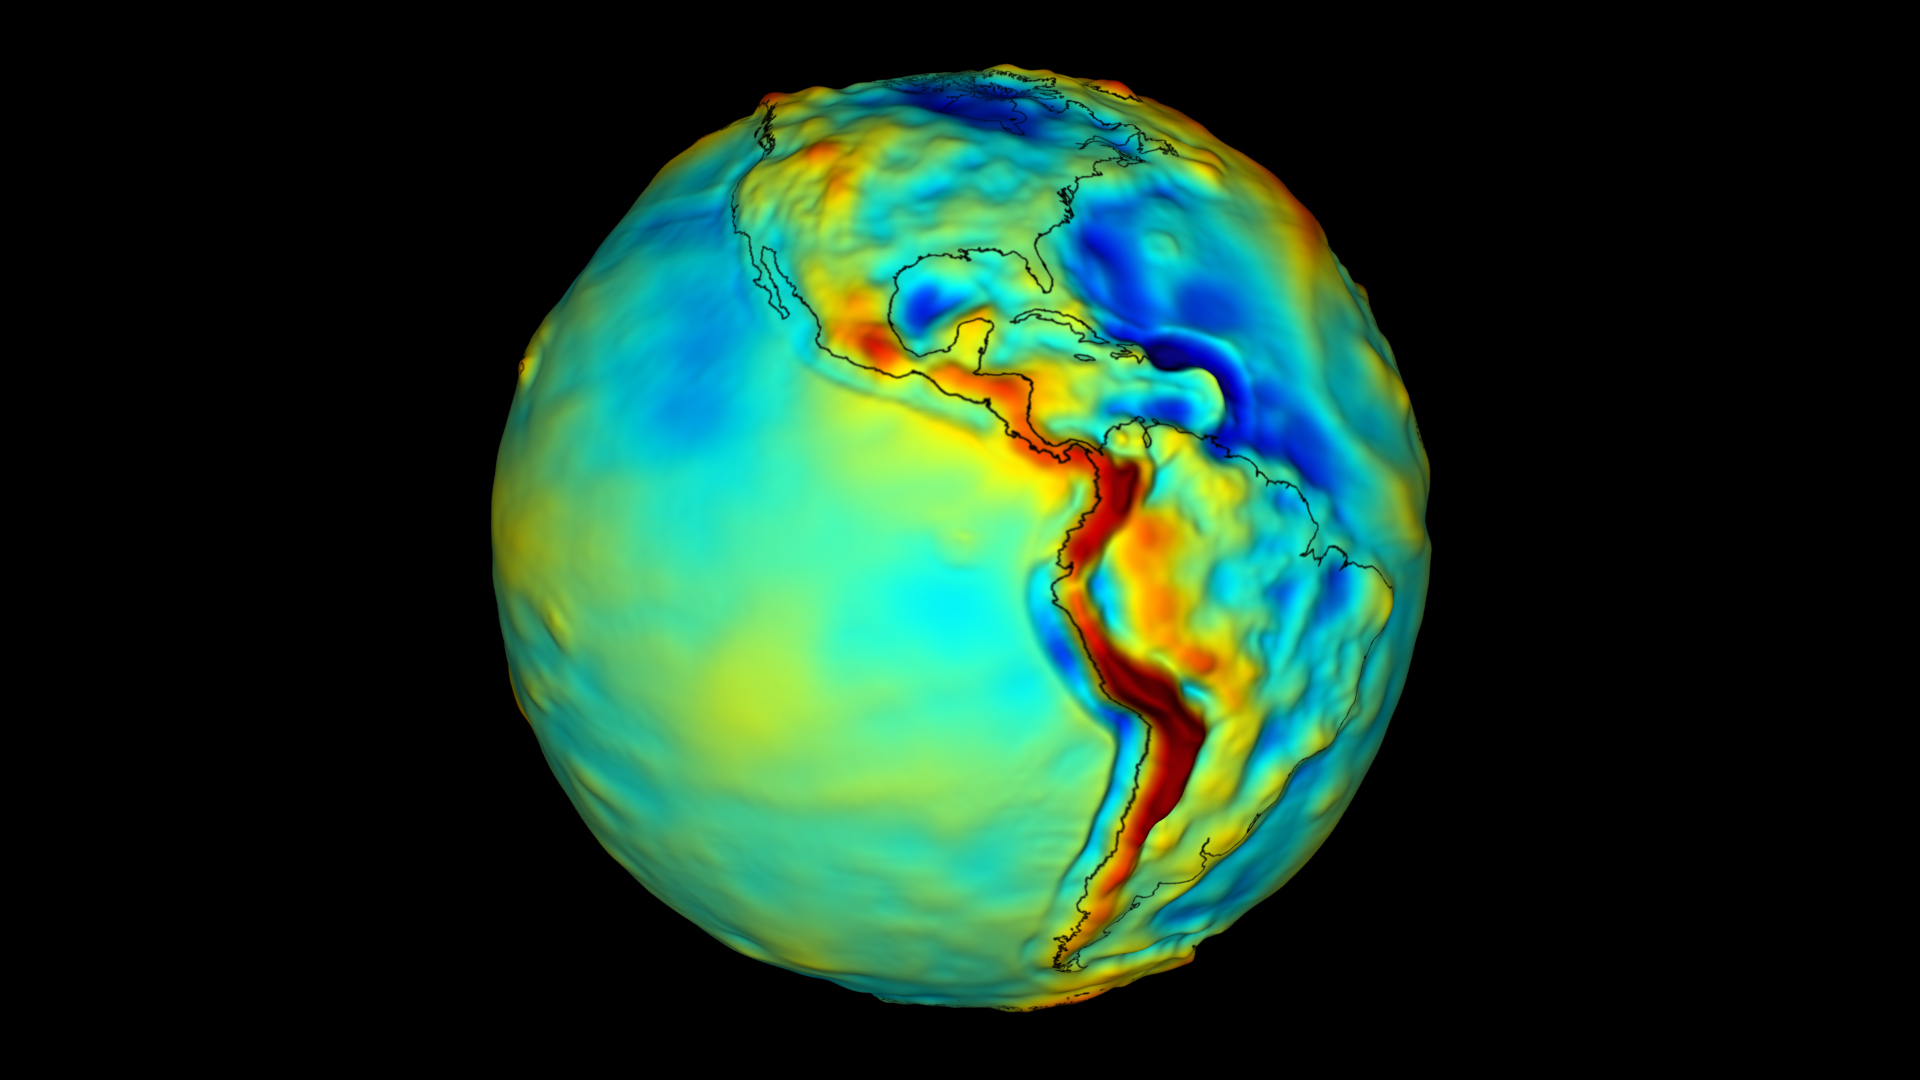 Satellite measurements offer scientists a new view of our planet. Warm colors (red, orange, yellow) represent areas with strong gravity. Cool colors (green, blue) represent areas with weak gravity. Image credit: NASA's Goddard Space Flight Center